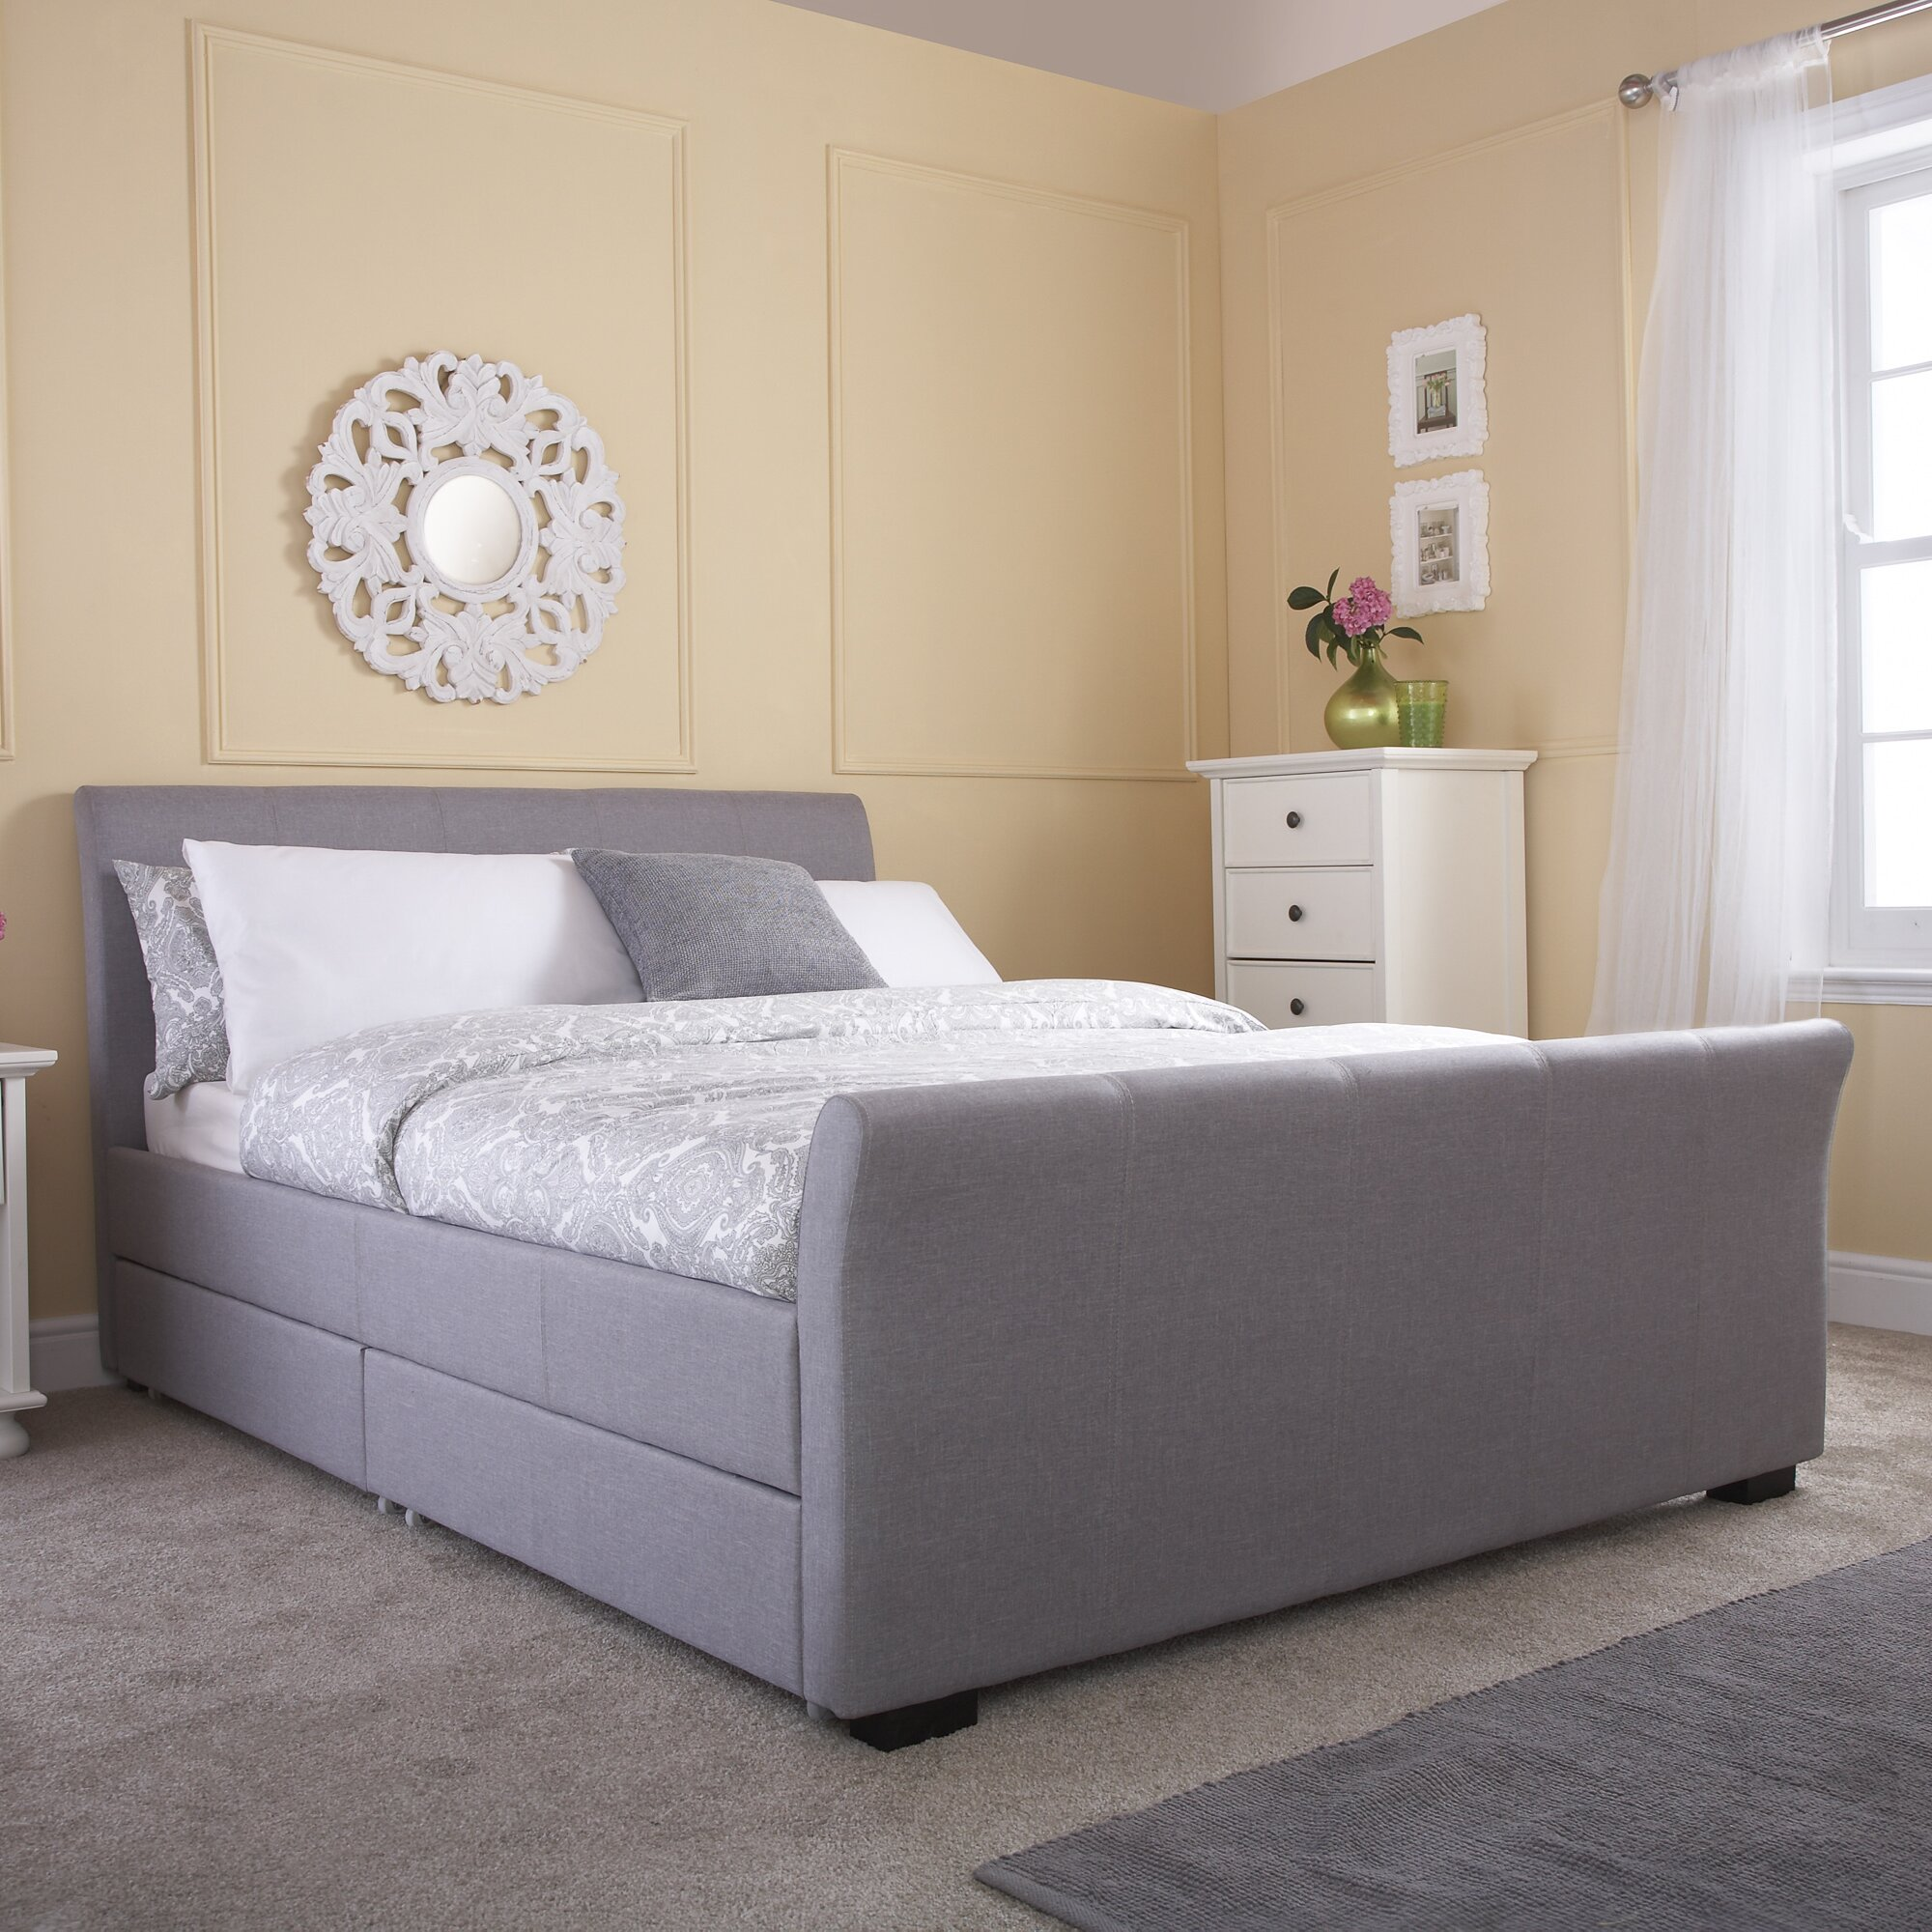 Home loft concept hannah upholstered storage bed reviews for Concept beds